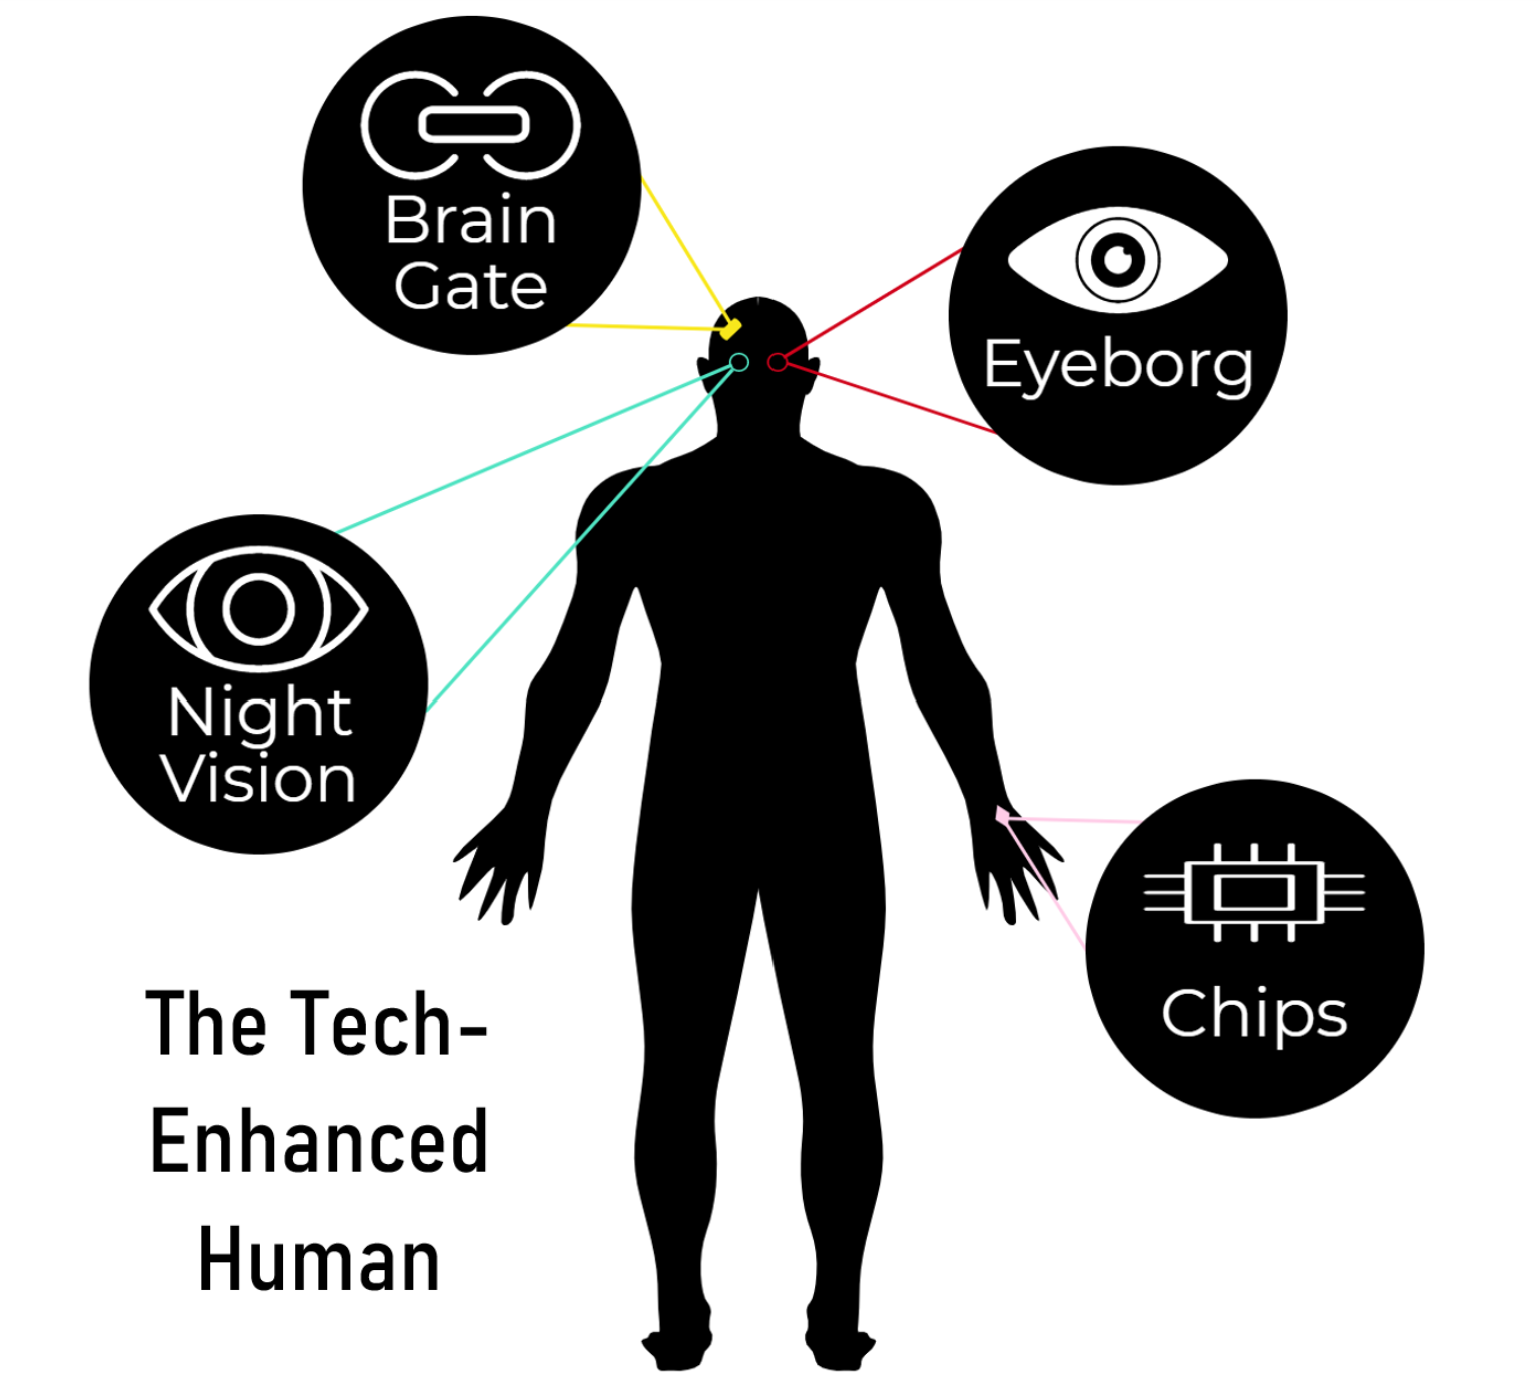 A diagram of four potential biohacks and where they might be placed in the body.